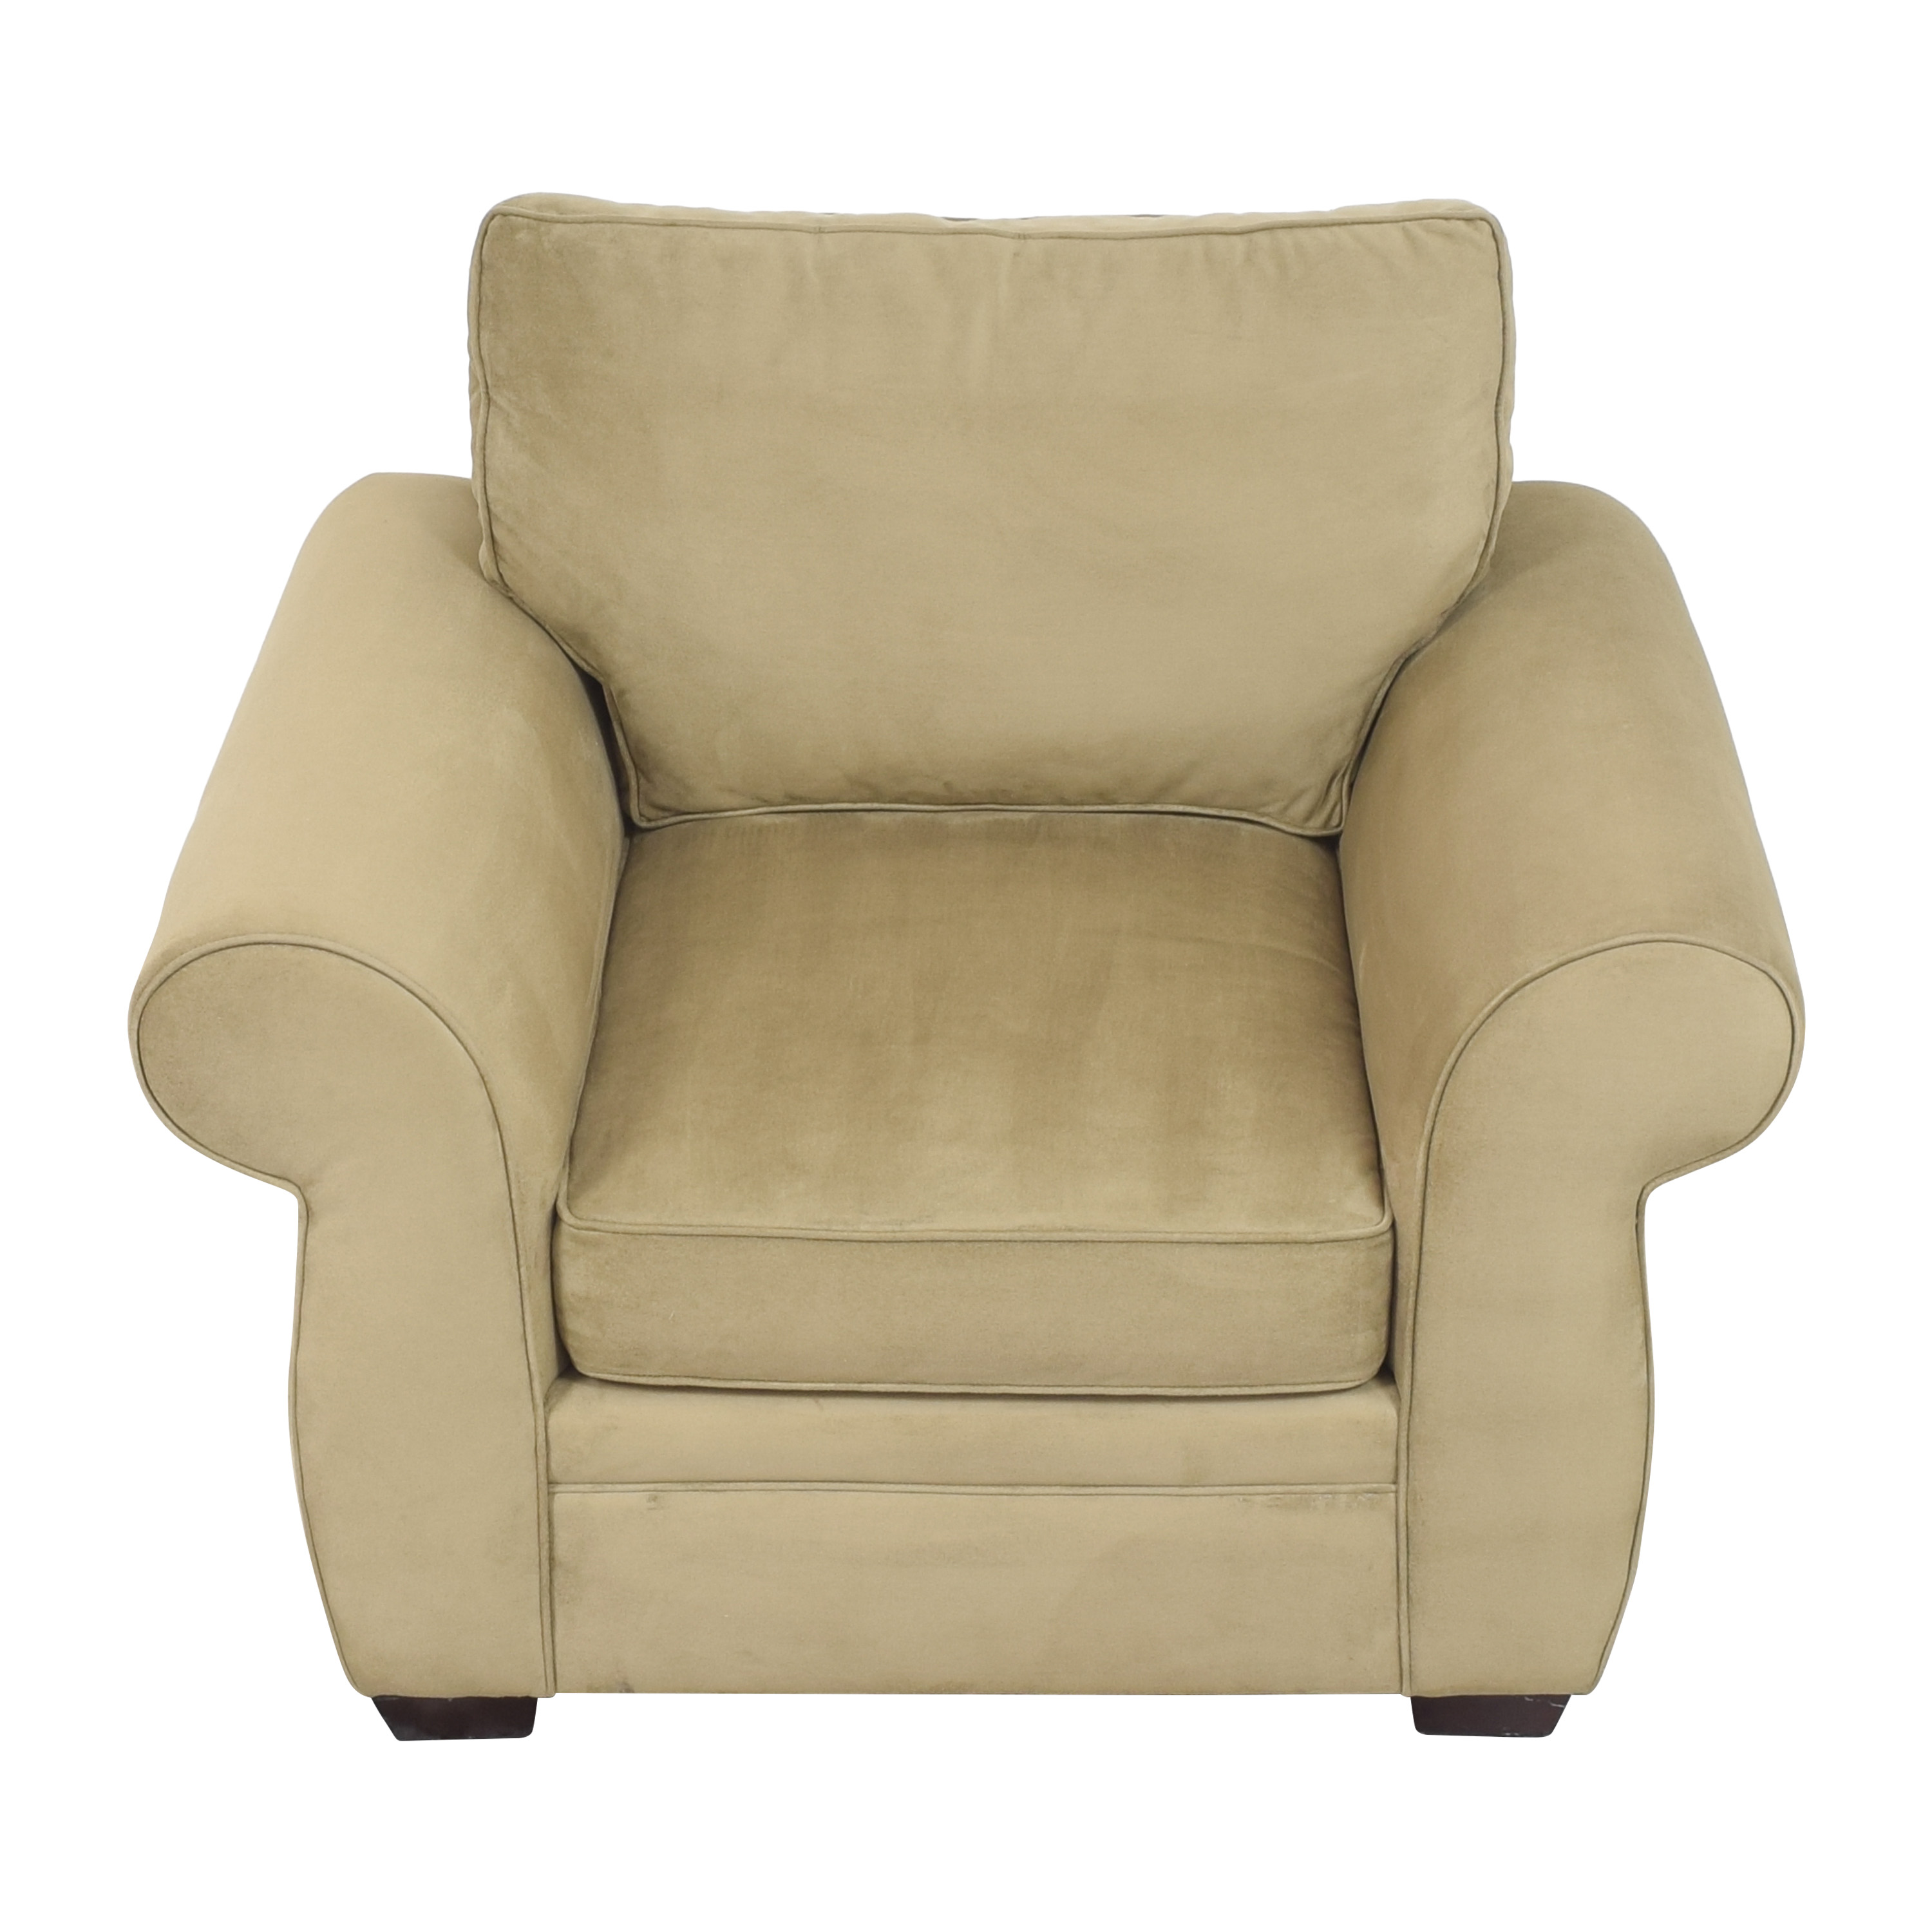 buy Pottery Barn Pearce Roll Arm Upholstered Armchair Pottery Barn Chairs